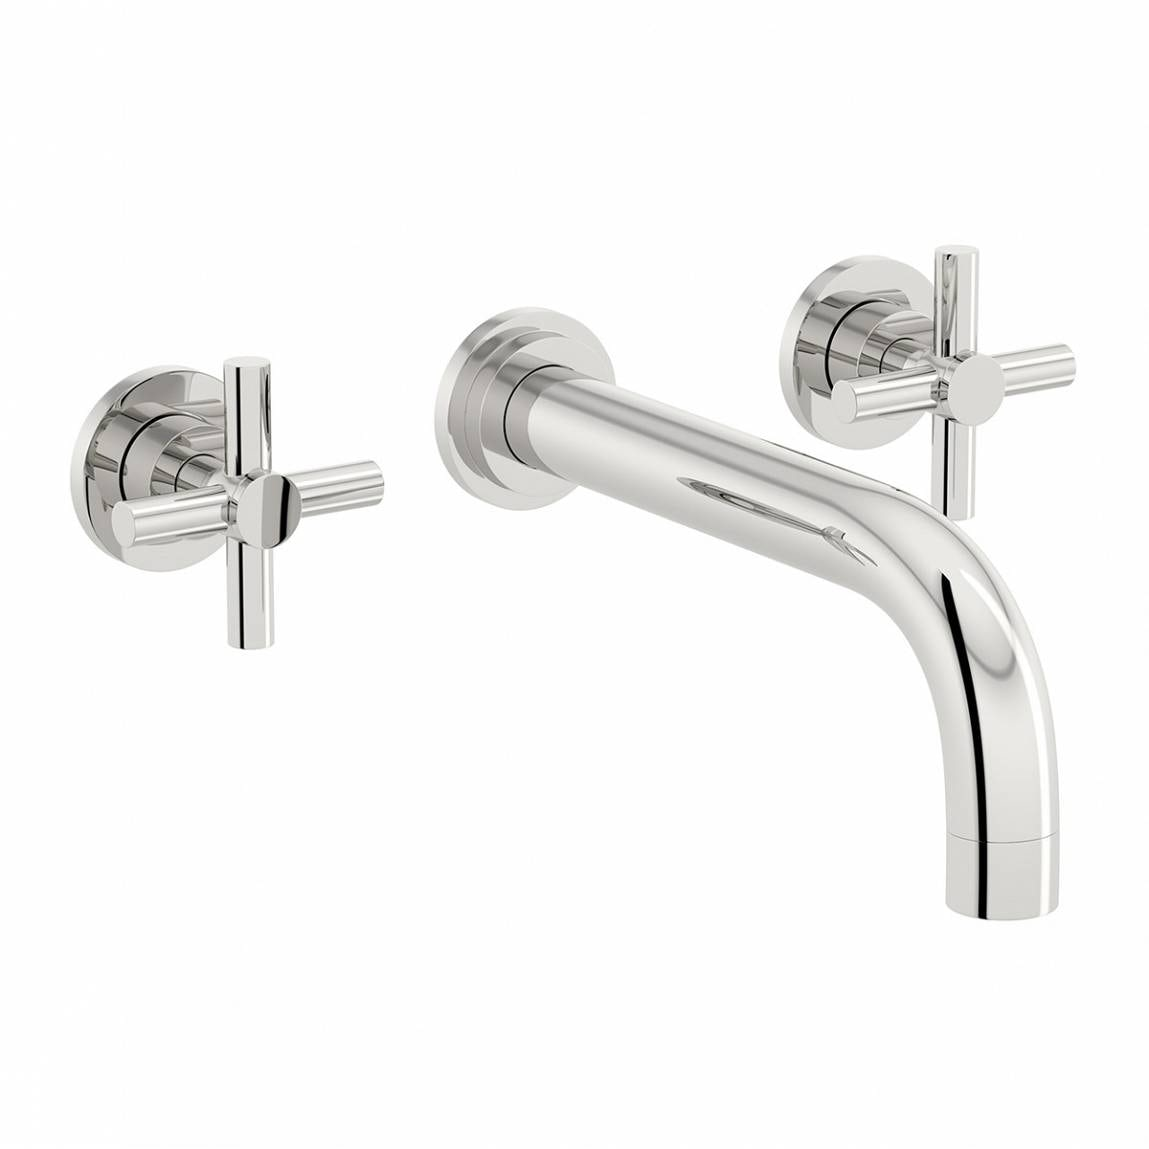 Tate Wall Mounted Basin Mixer